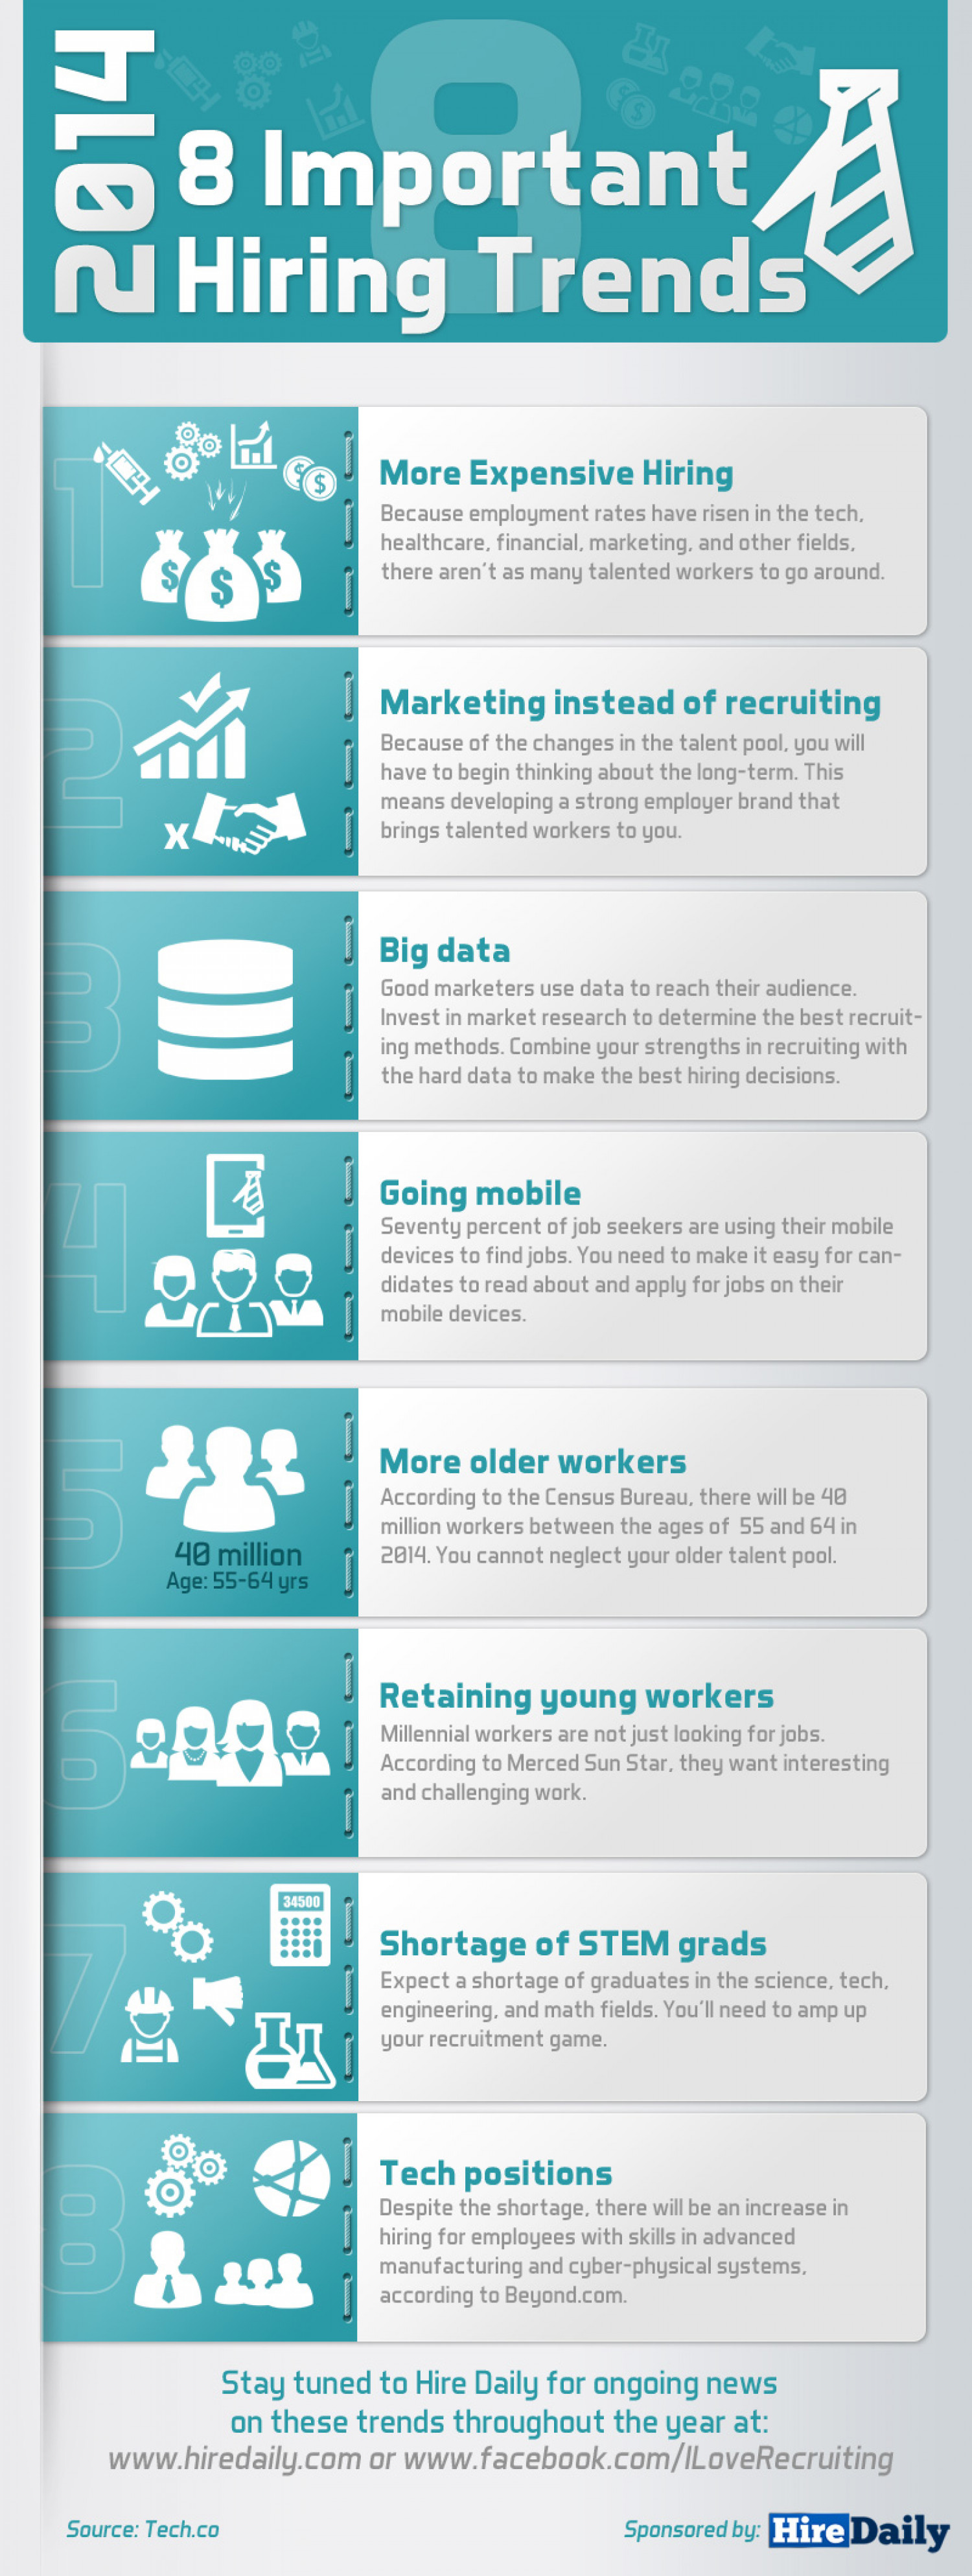 8 Most Important Hiring Trends for 2014 Infographic